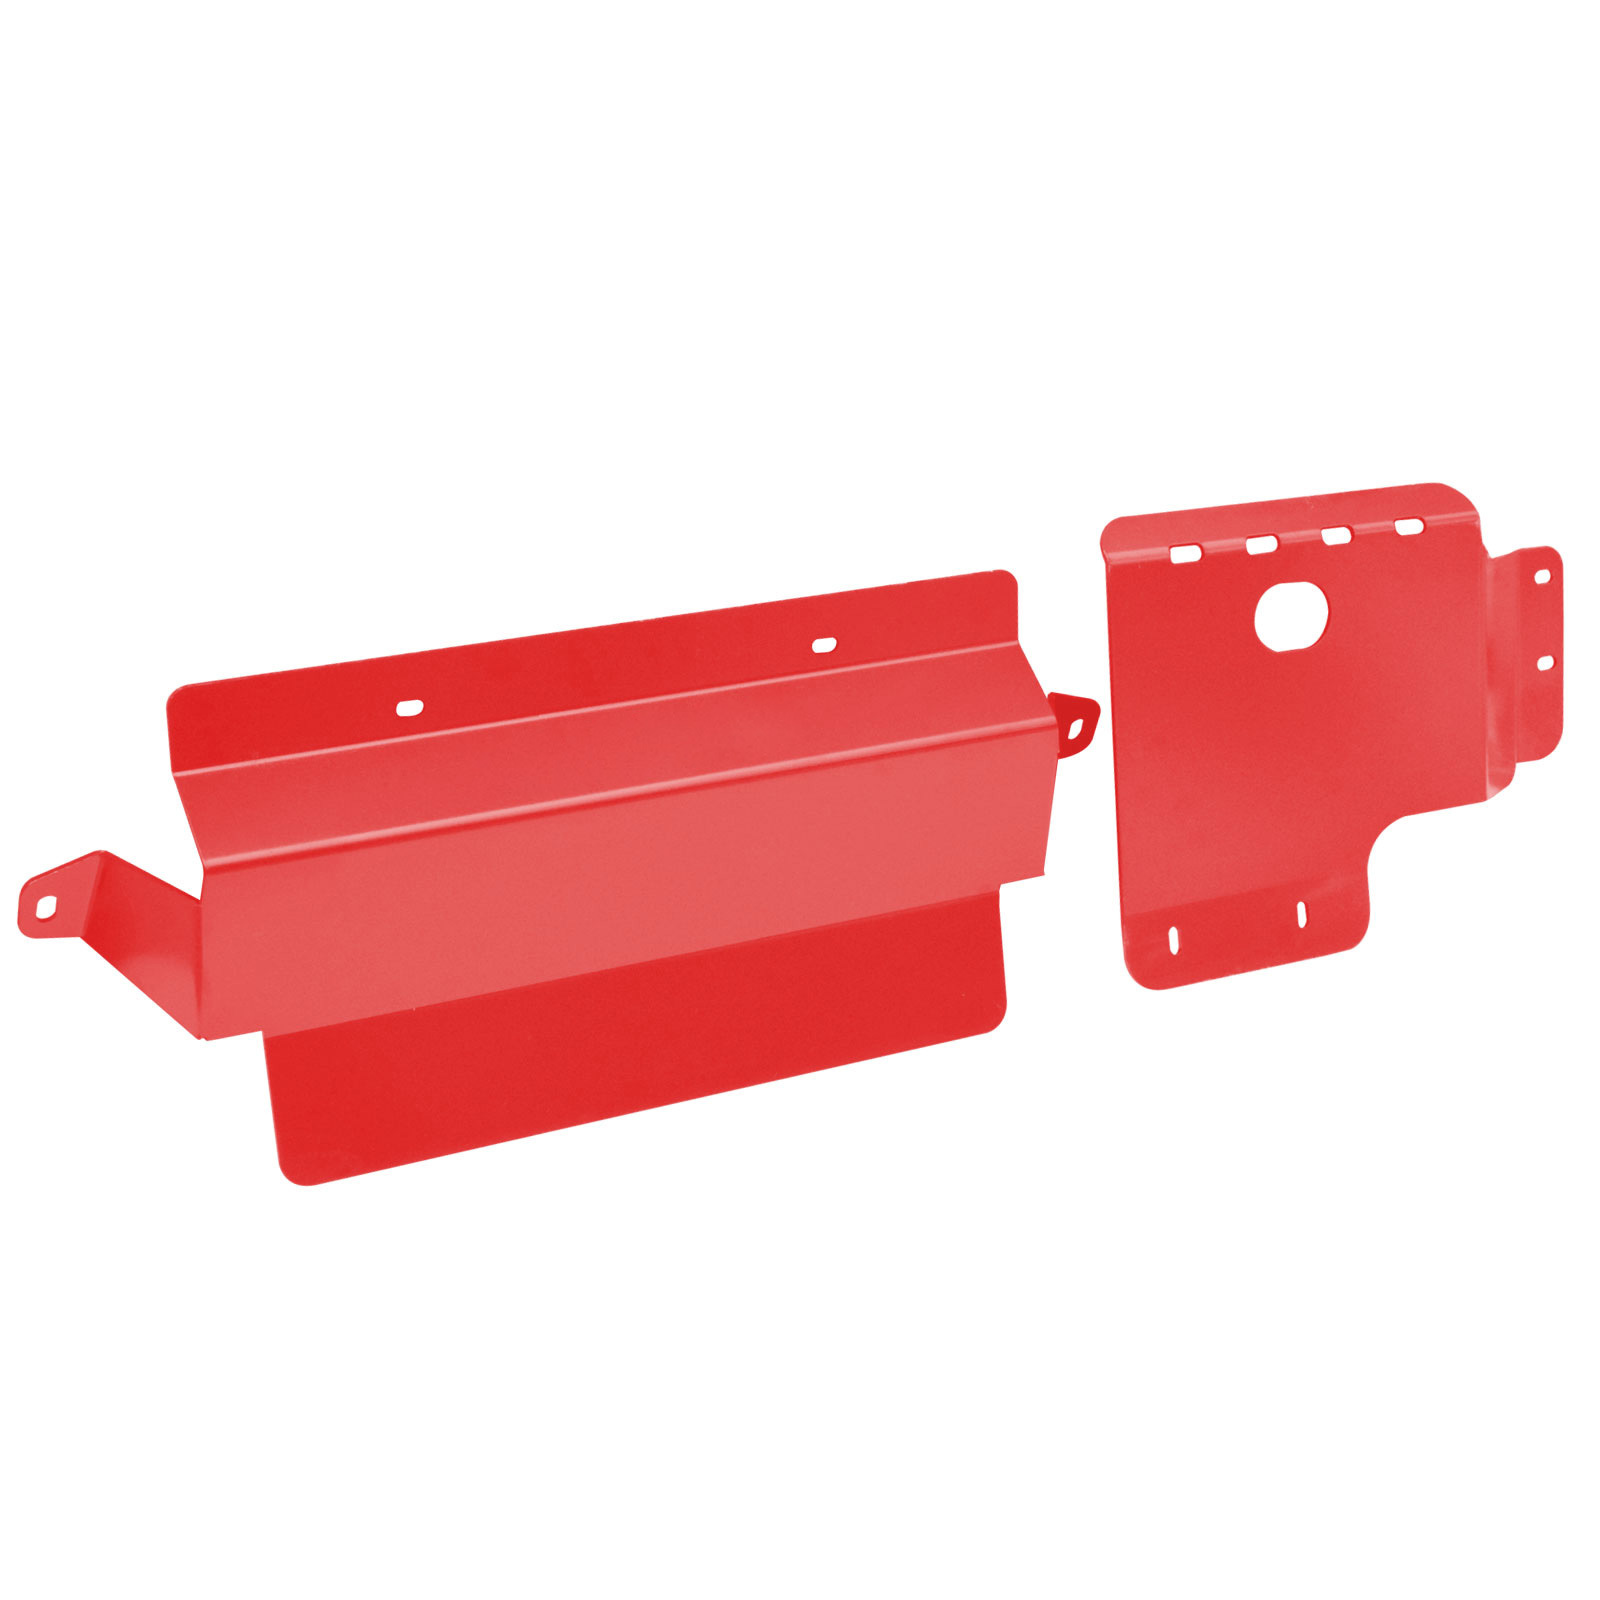 2pcs Bash Plate Fit For Toyota Landcruiser VDJ 76 78 79 V8 4mm RED Sump Guard image